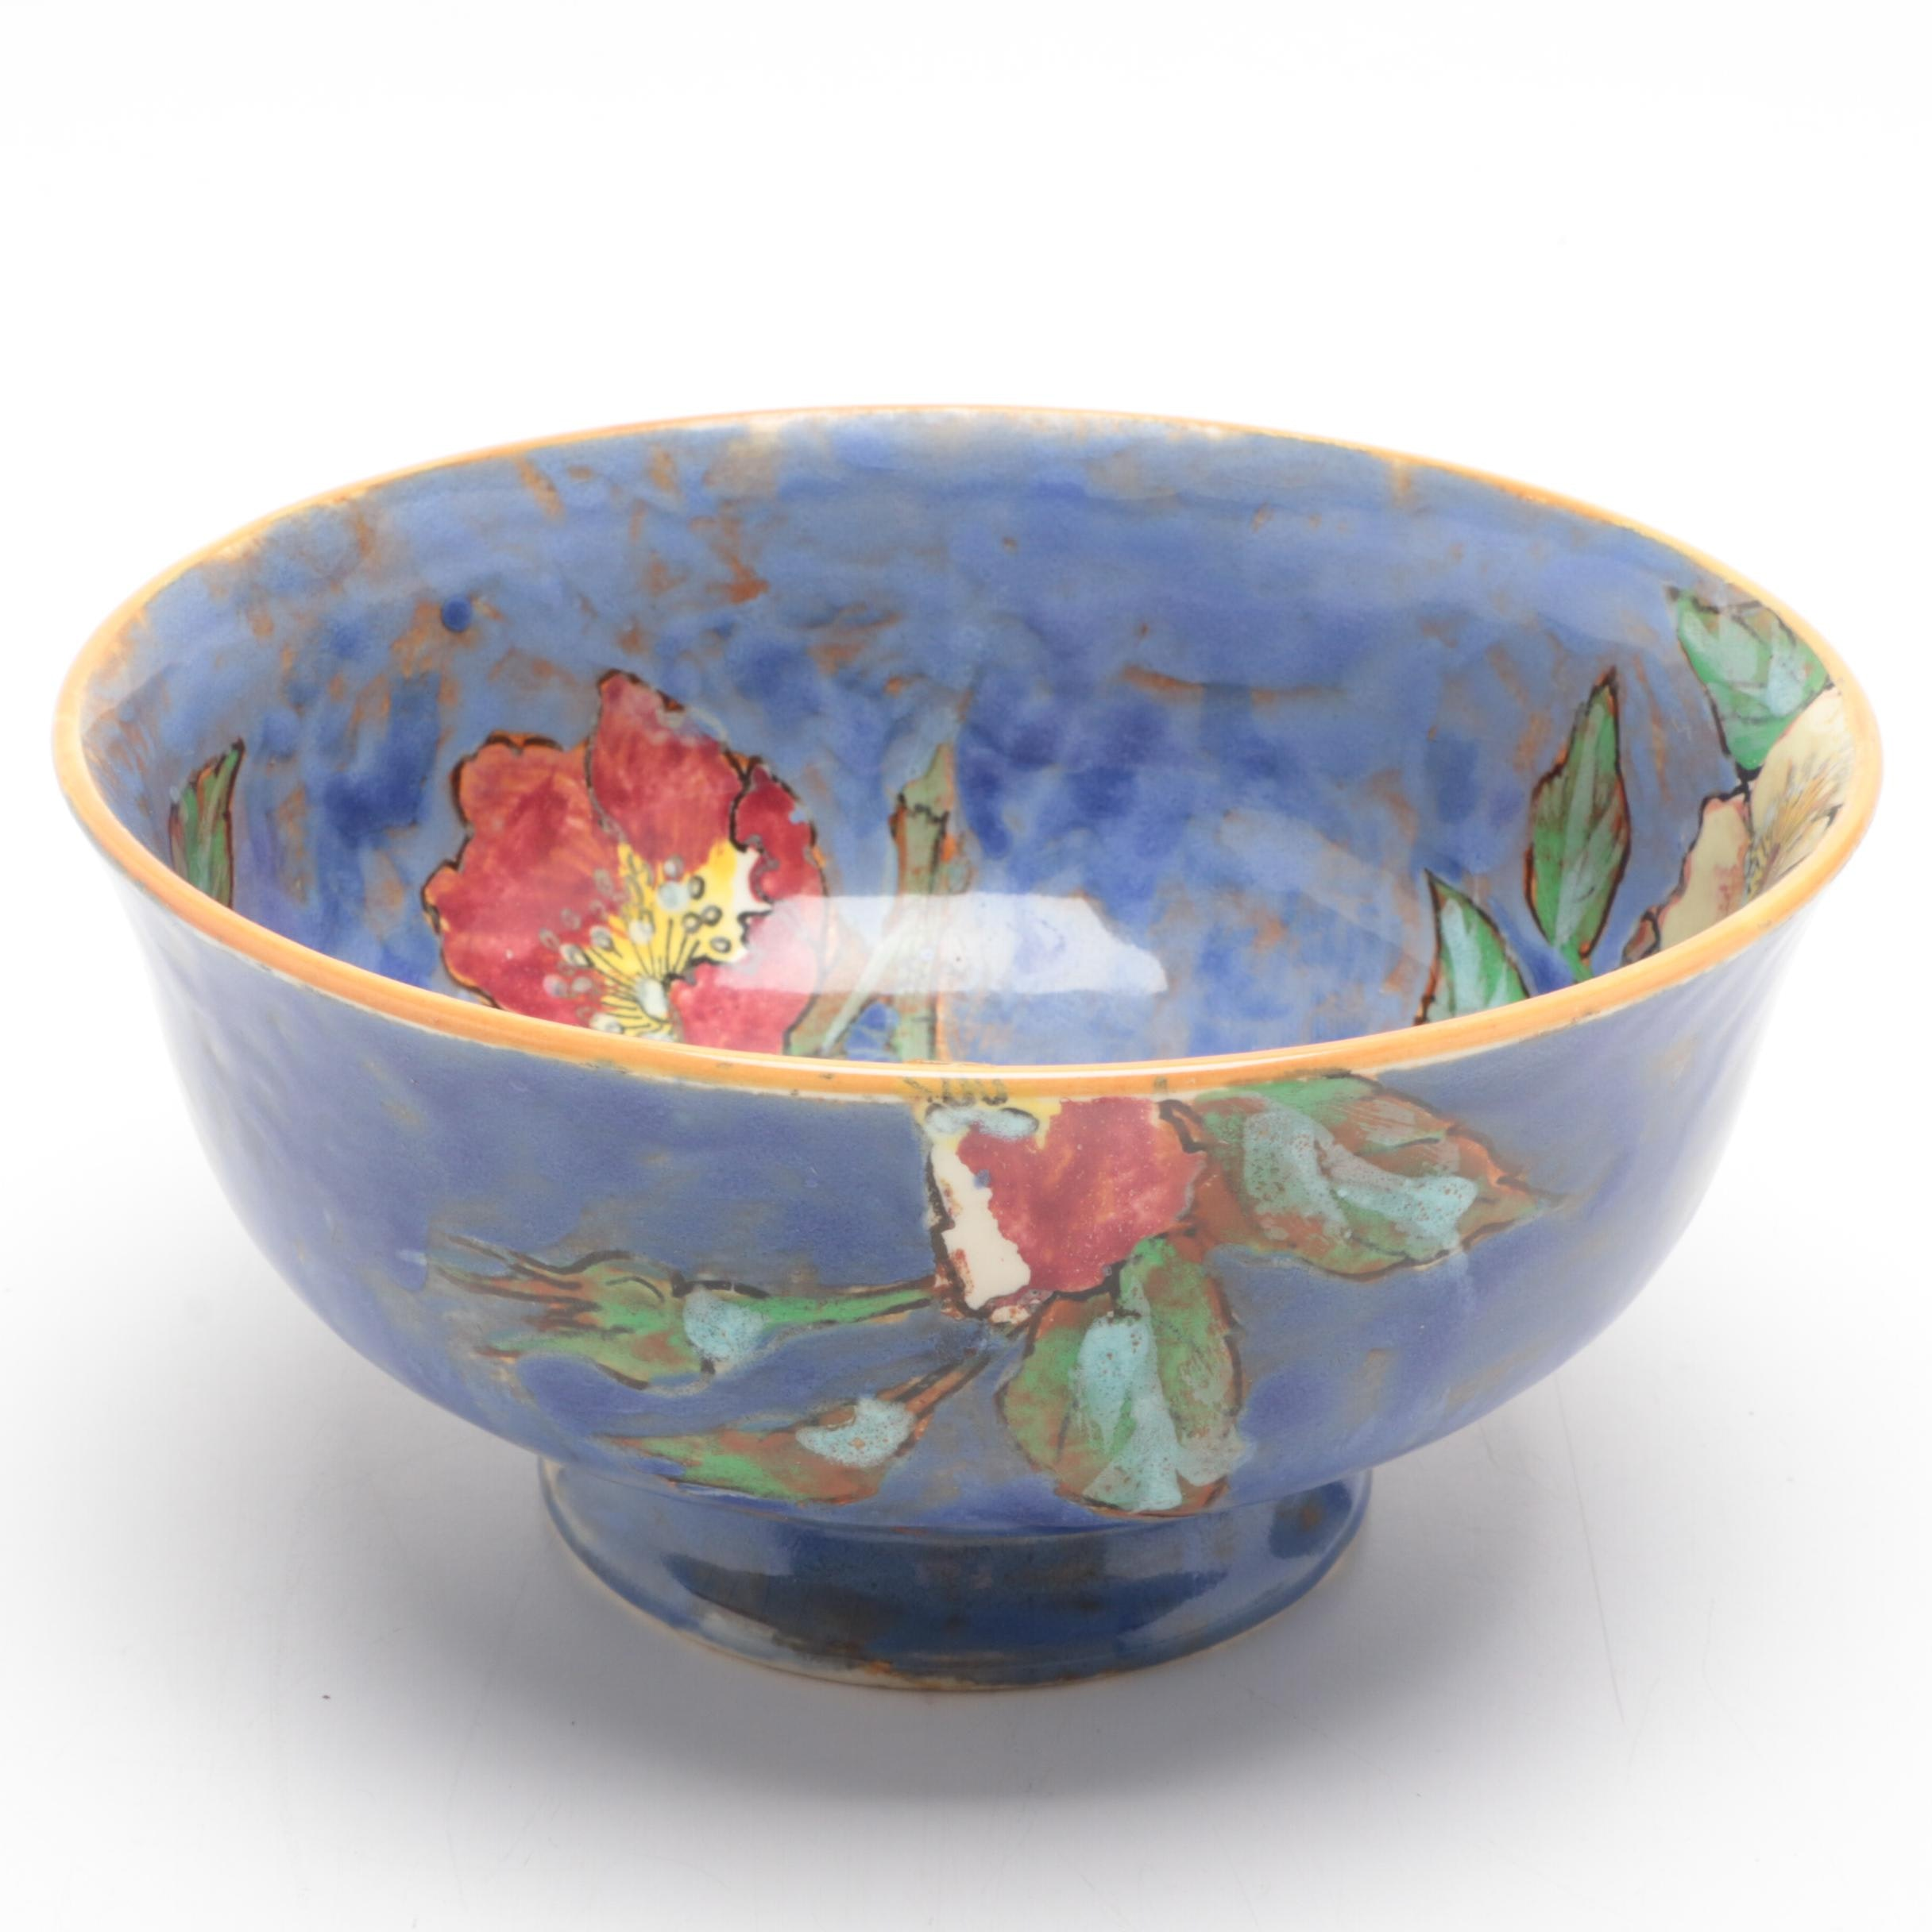 Hand-Decorated Royal Doulton Center Bowl